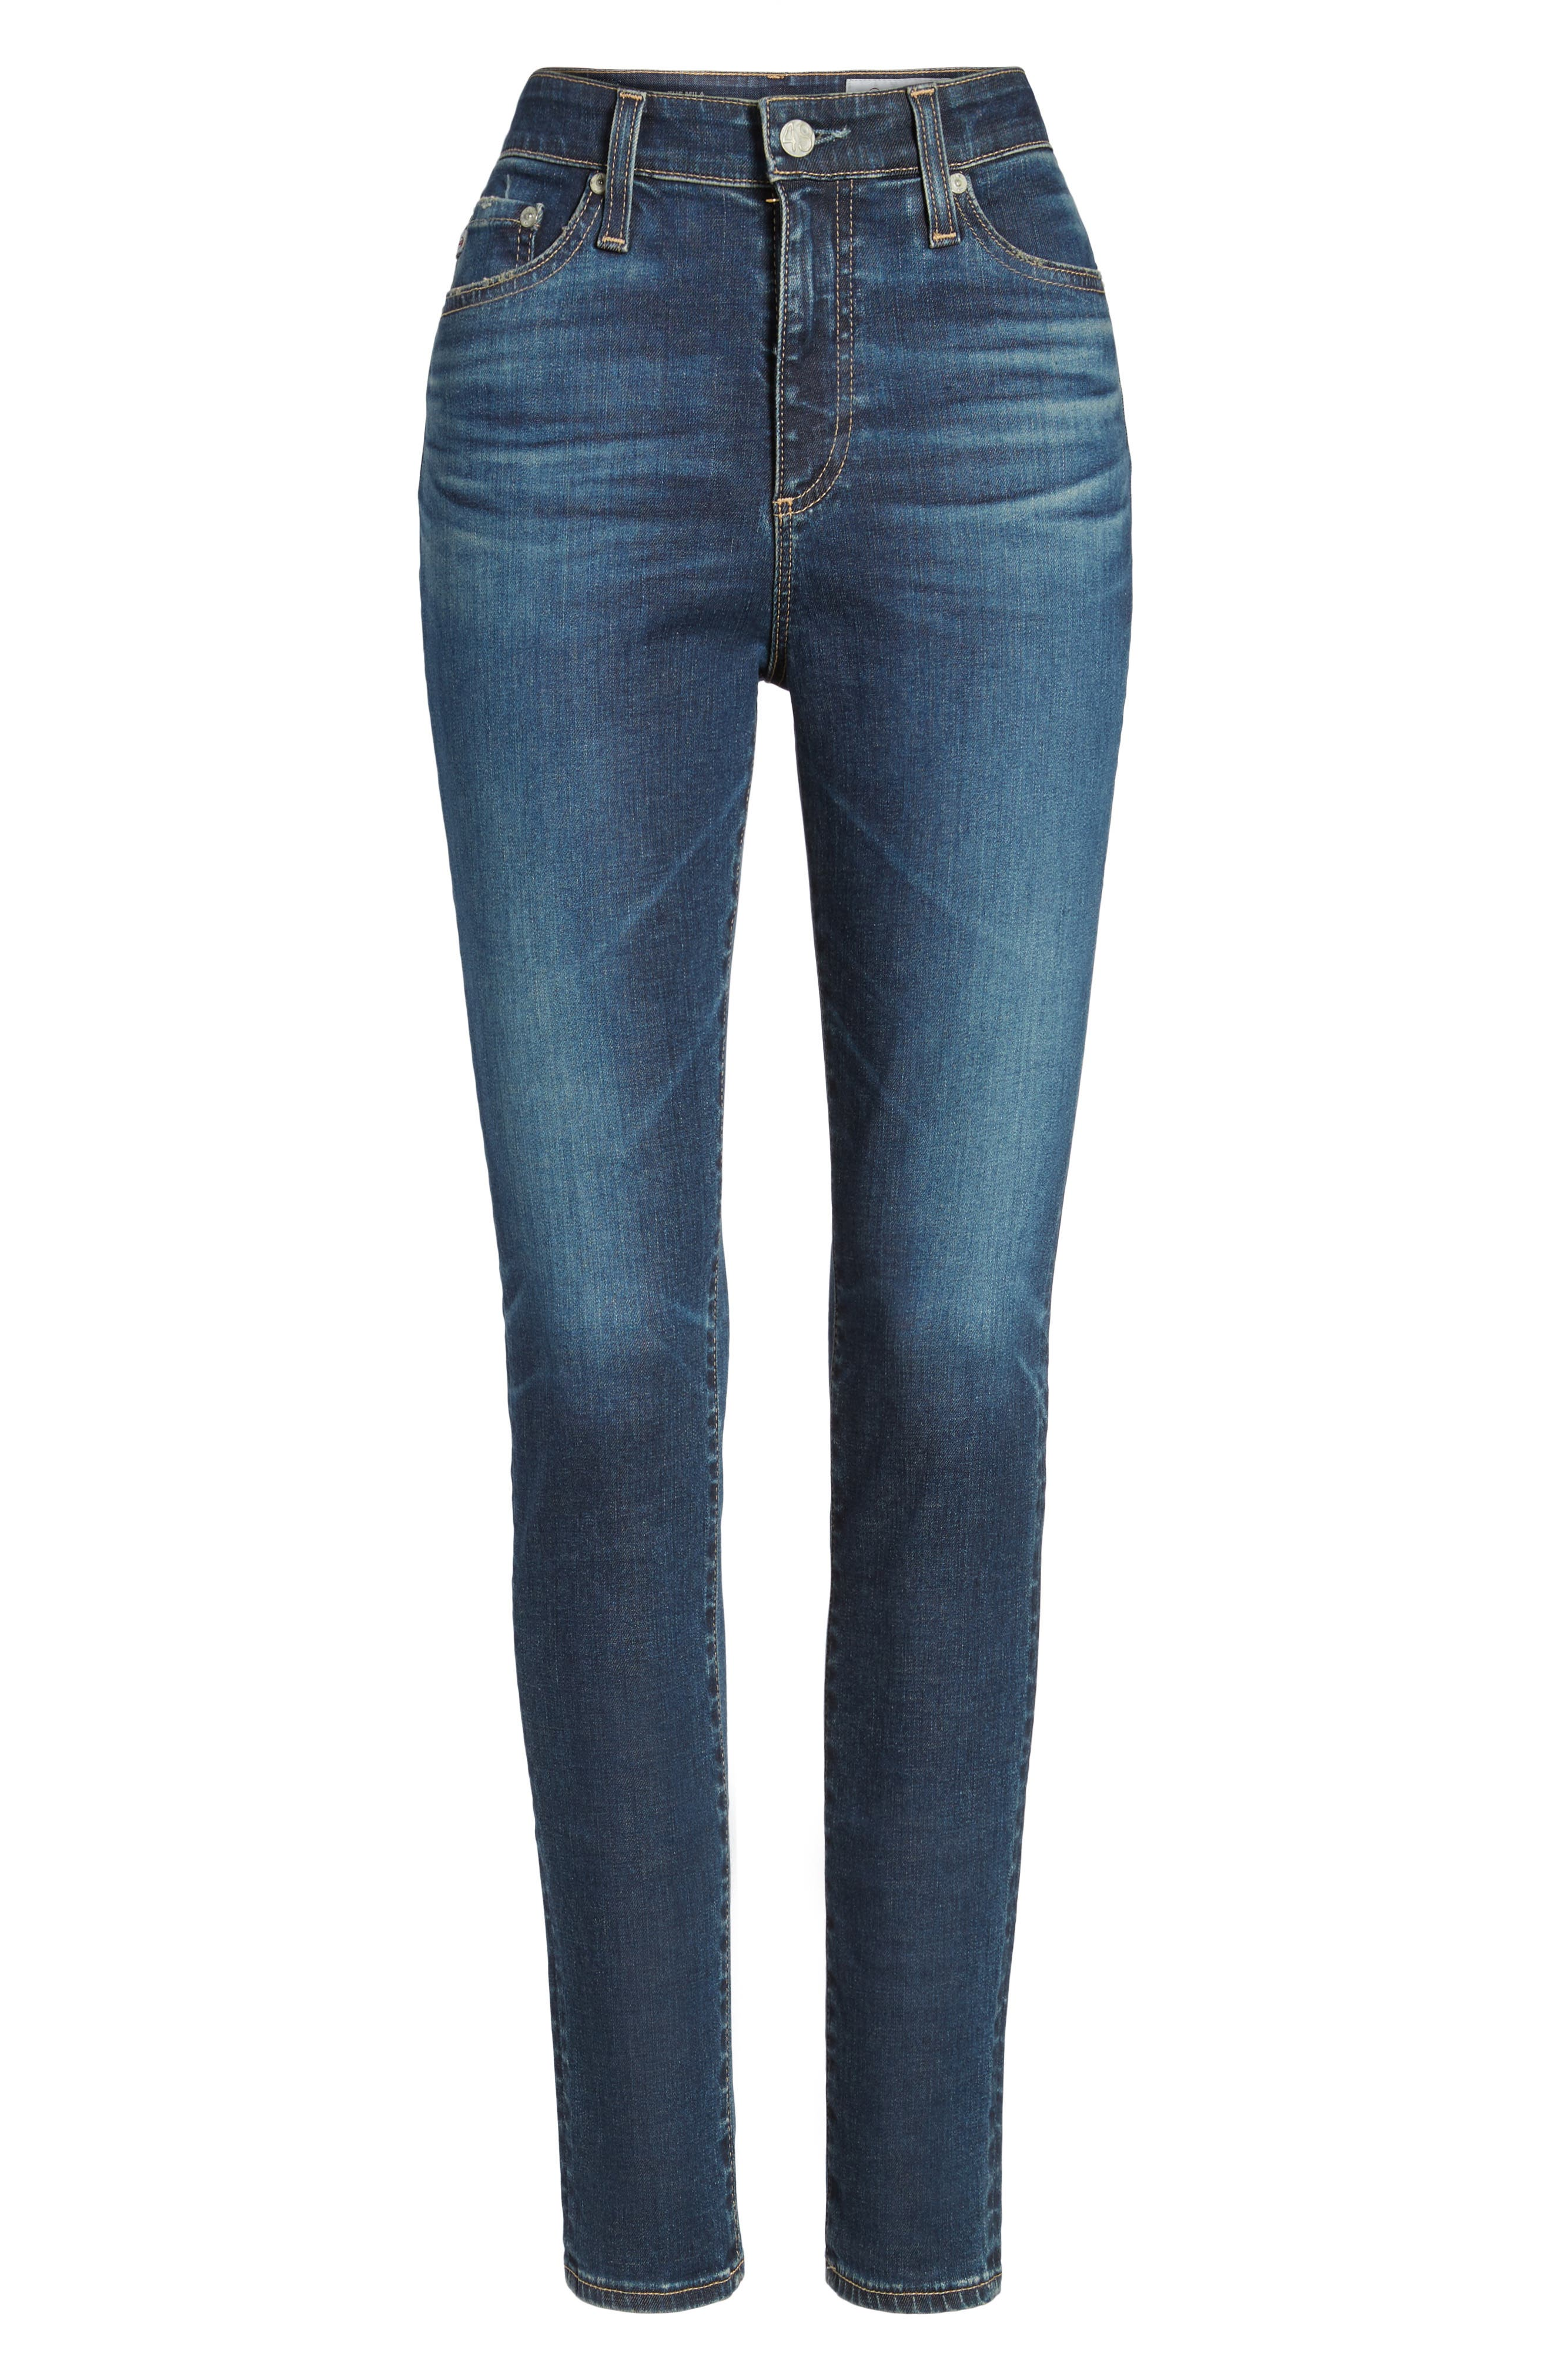 Mila High Rise Skinny Jeans,                             Alternate thumbnail 7, color,                             411